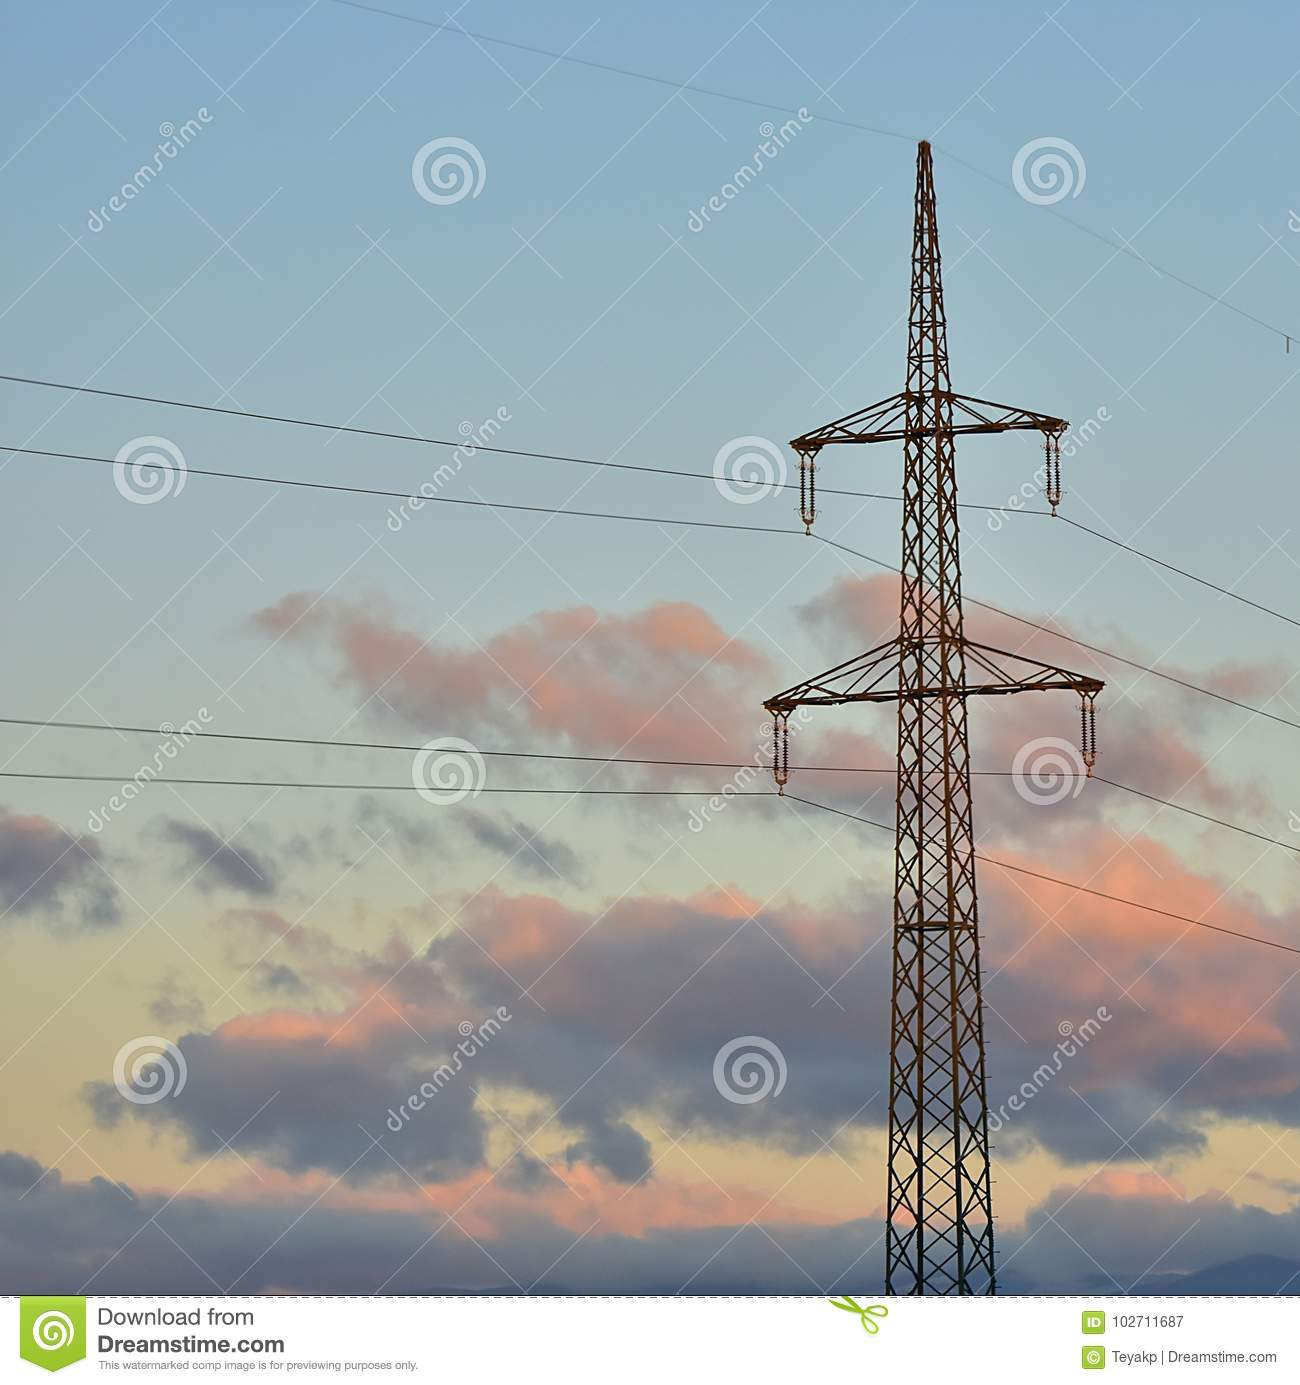 High voltage on power lines